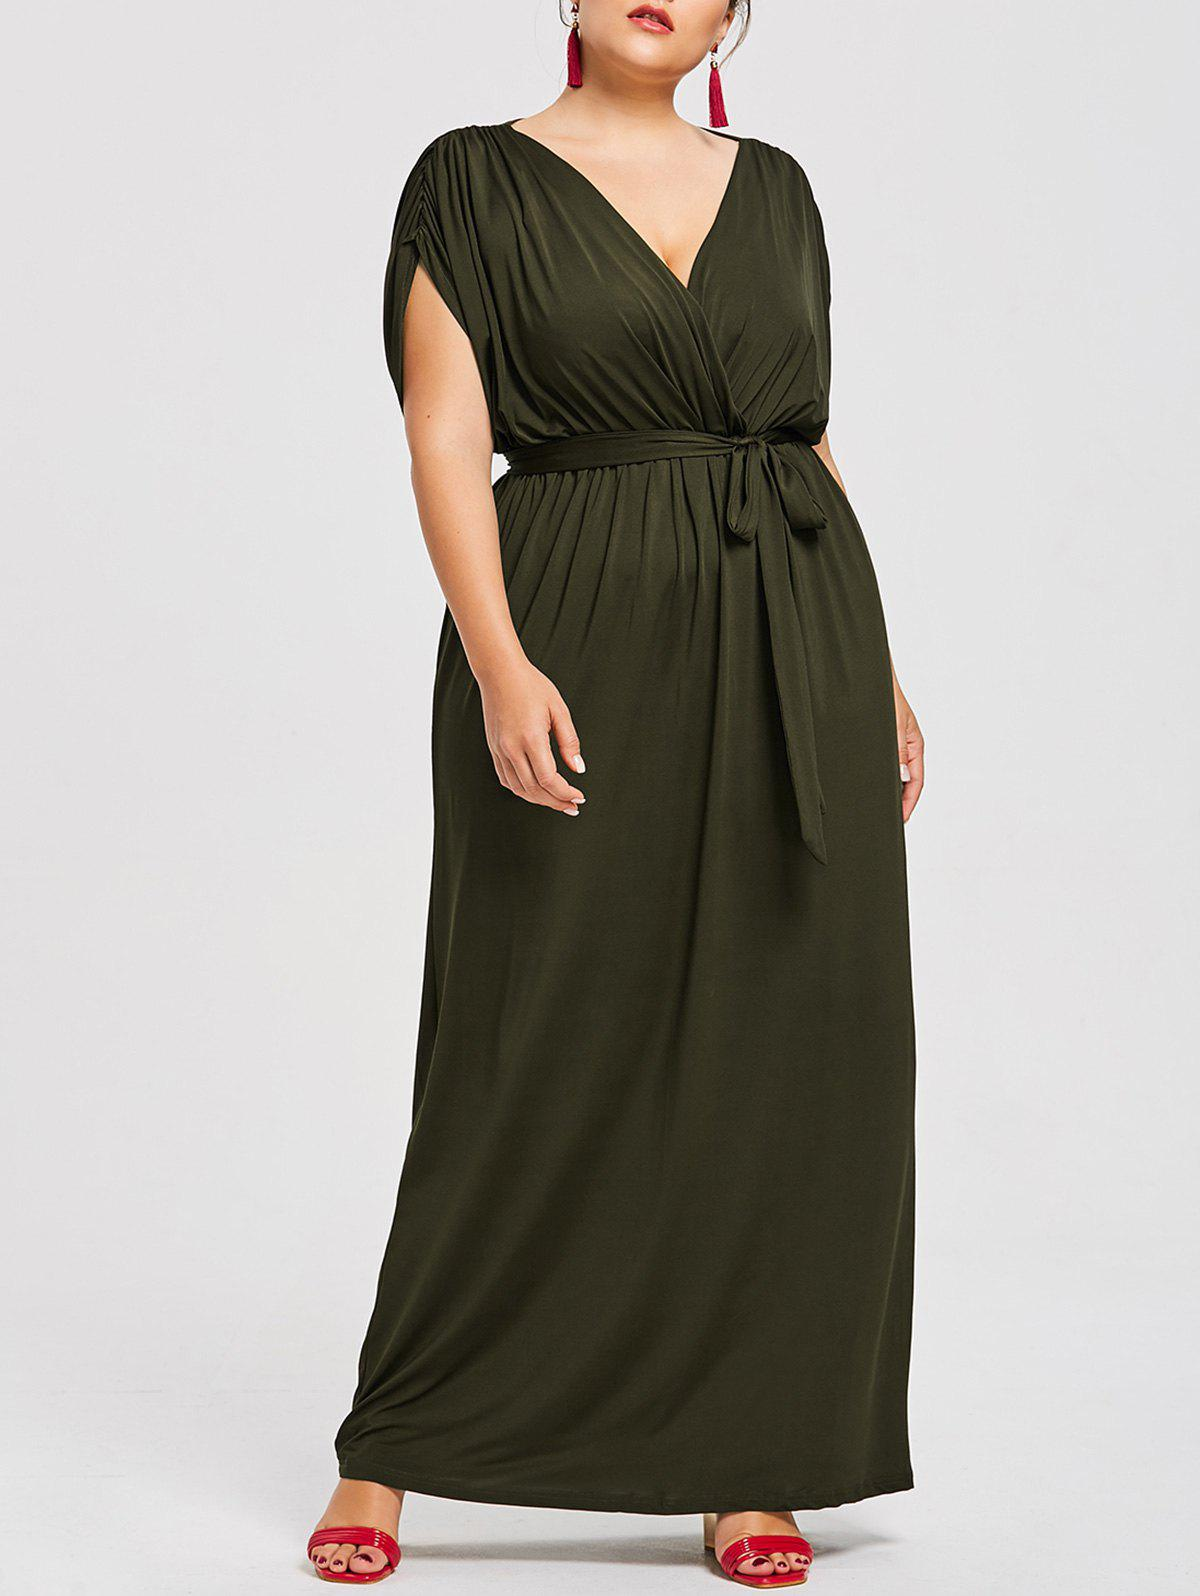 Unique Short Sleeve Plus Size Longline Dress